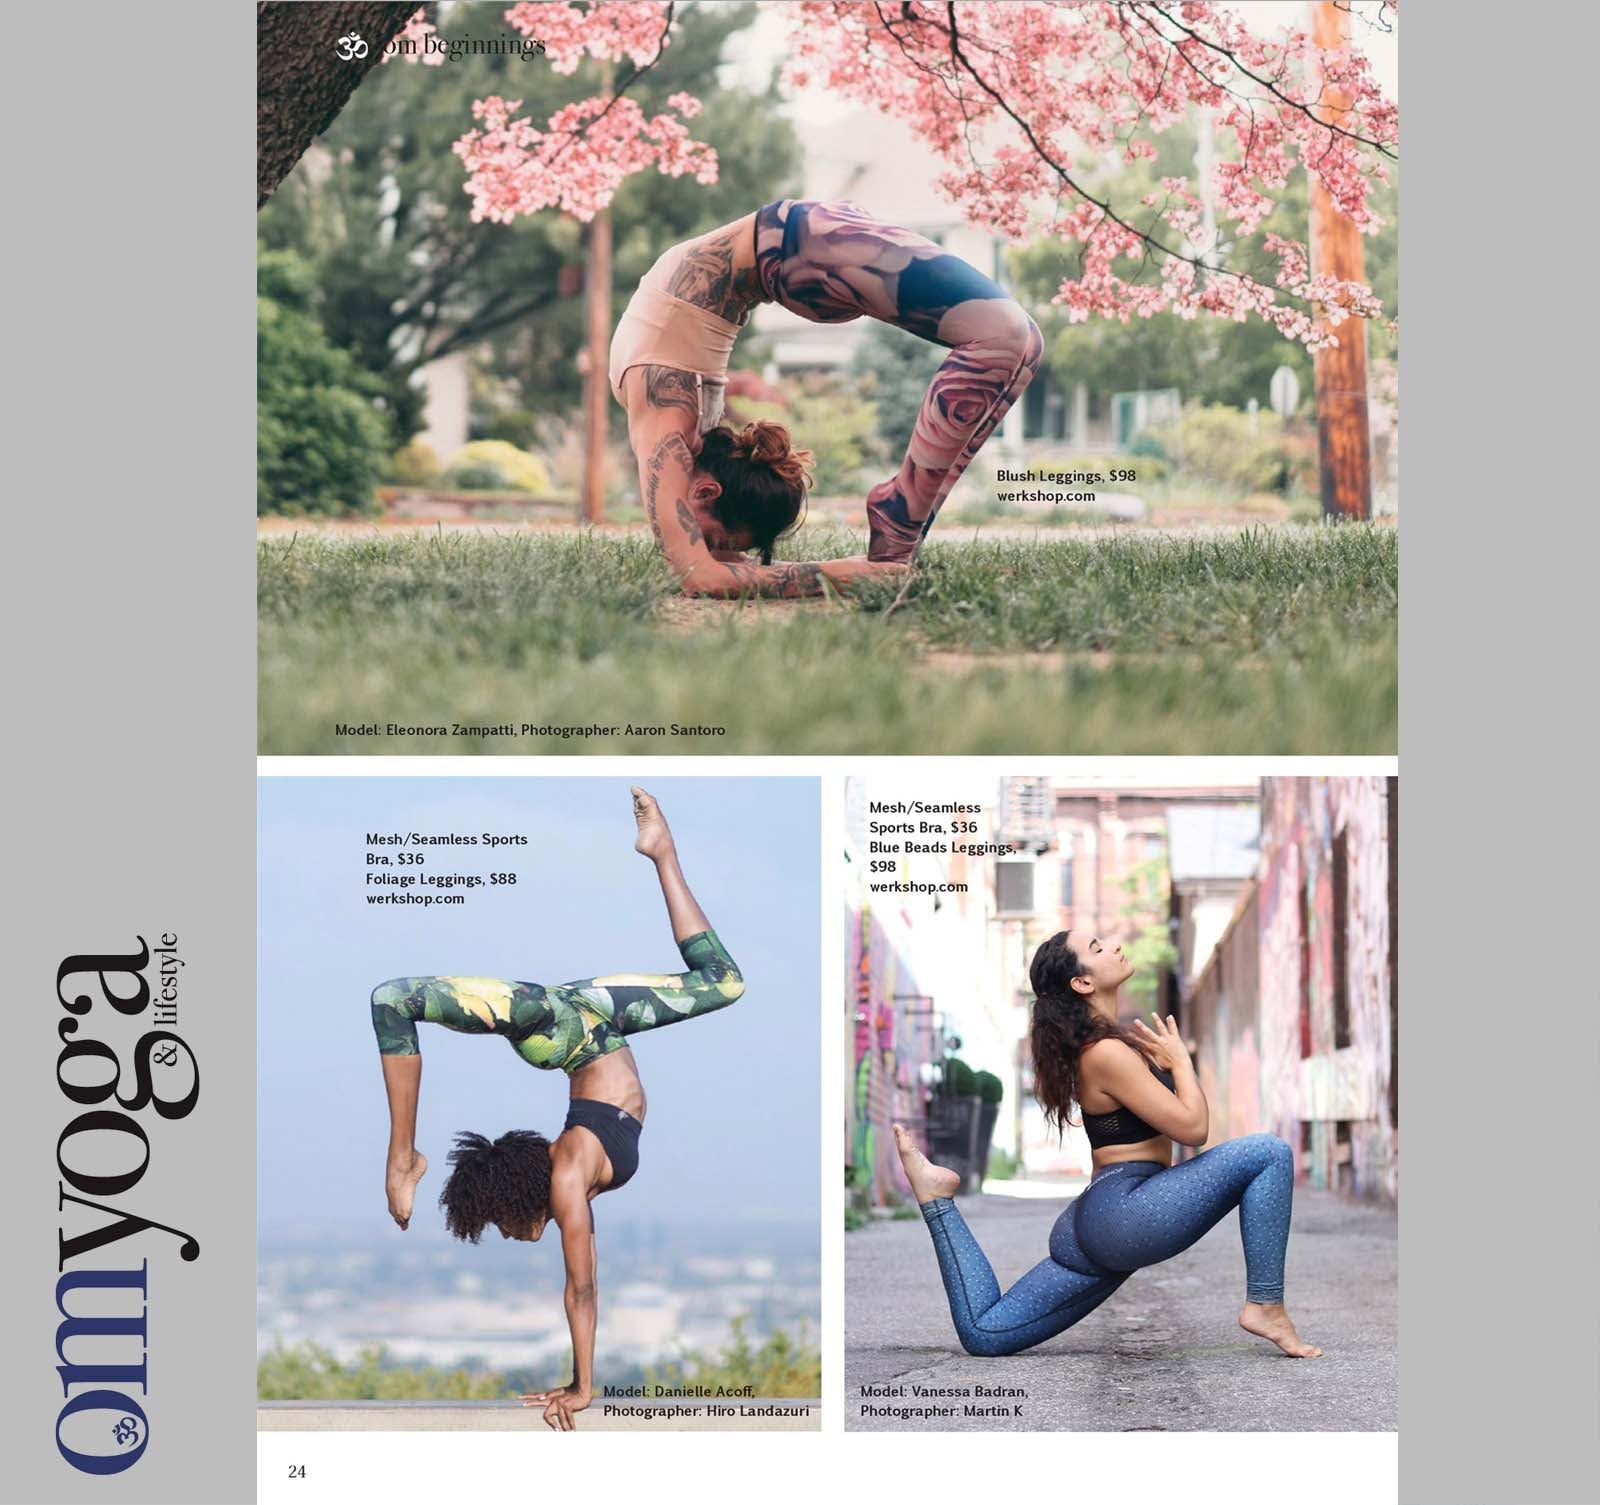 Om Yoga Magazine Editorial with WERKSHOP Blush, Foliage and Blue Beads featured.